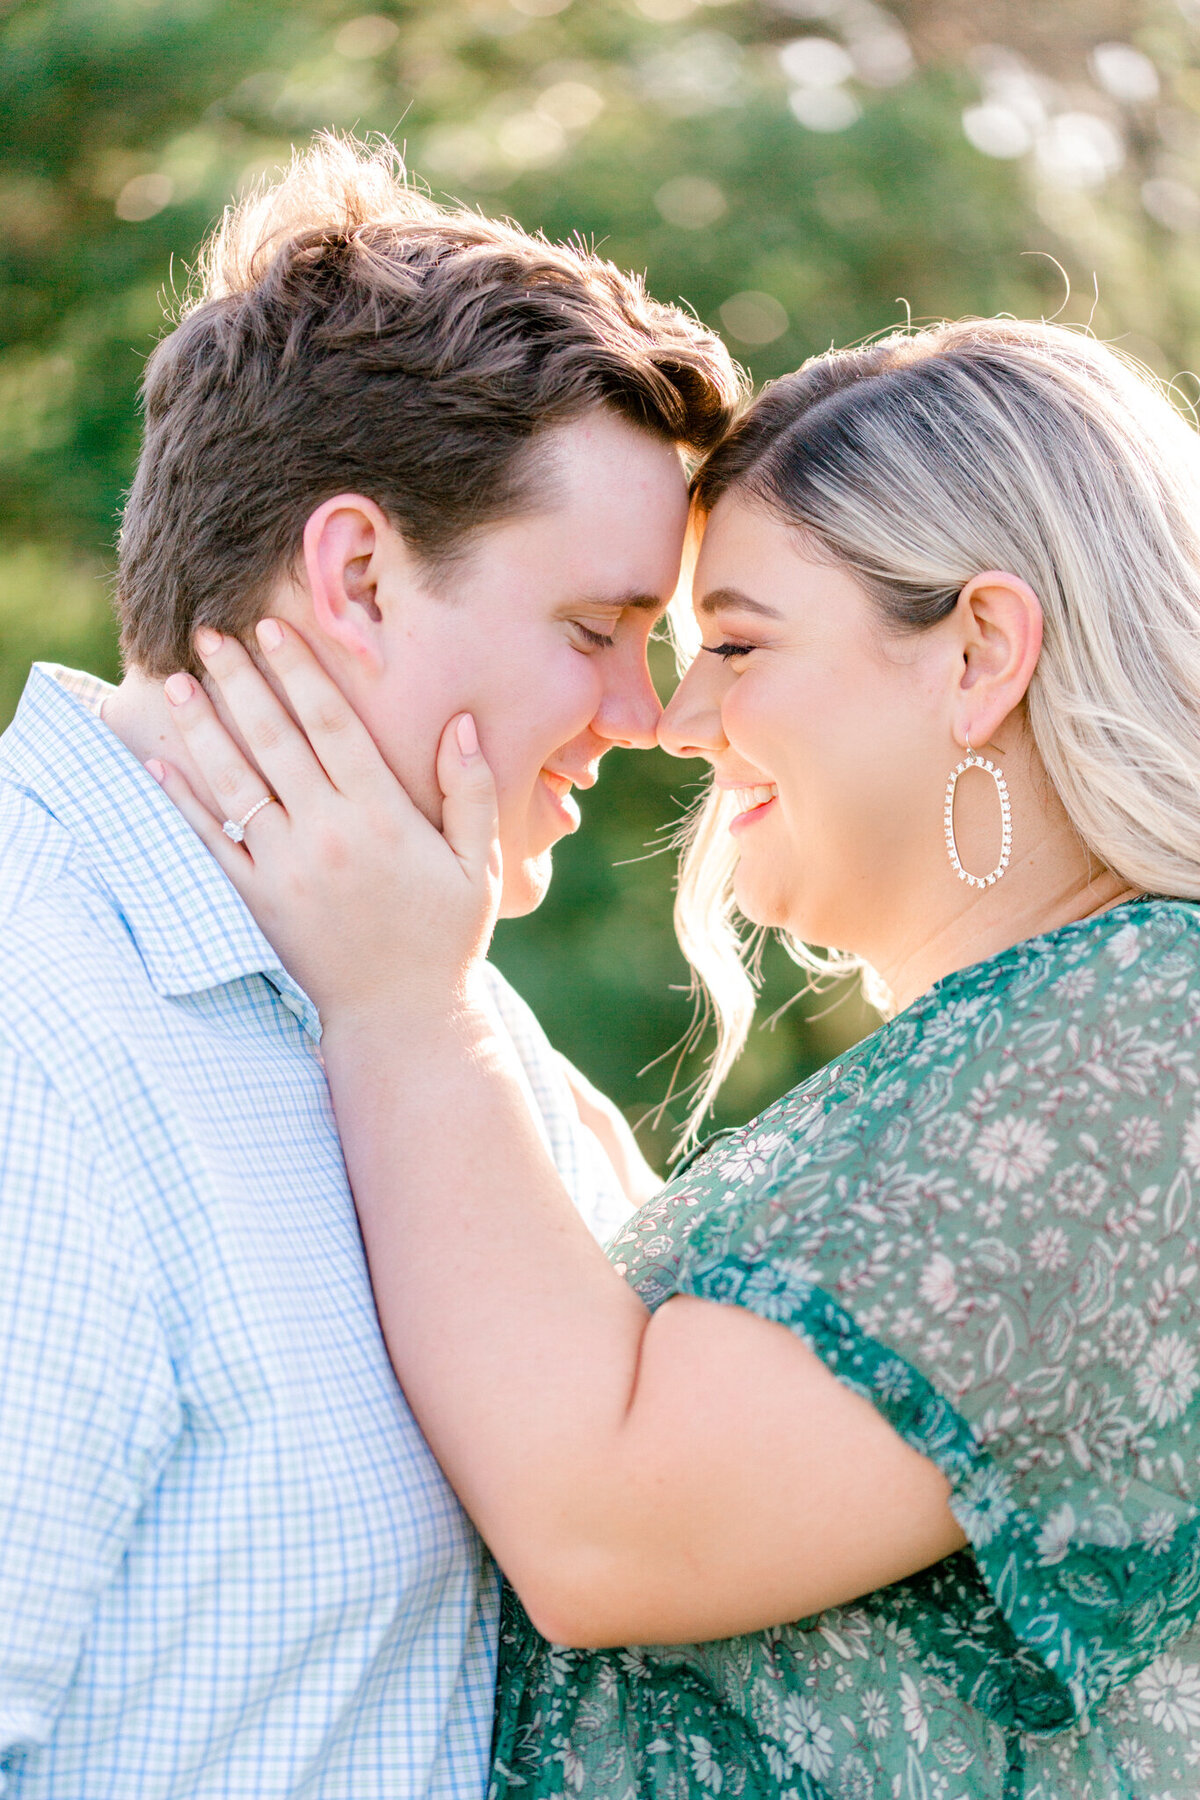 Maddie & Chris Engagement Session at Tandy Hills Natural Area | Sami Kathryn Photography | Dallas DFW Fort Worth Wedding and Portrait Photogapher-6